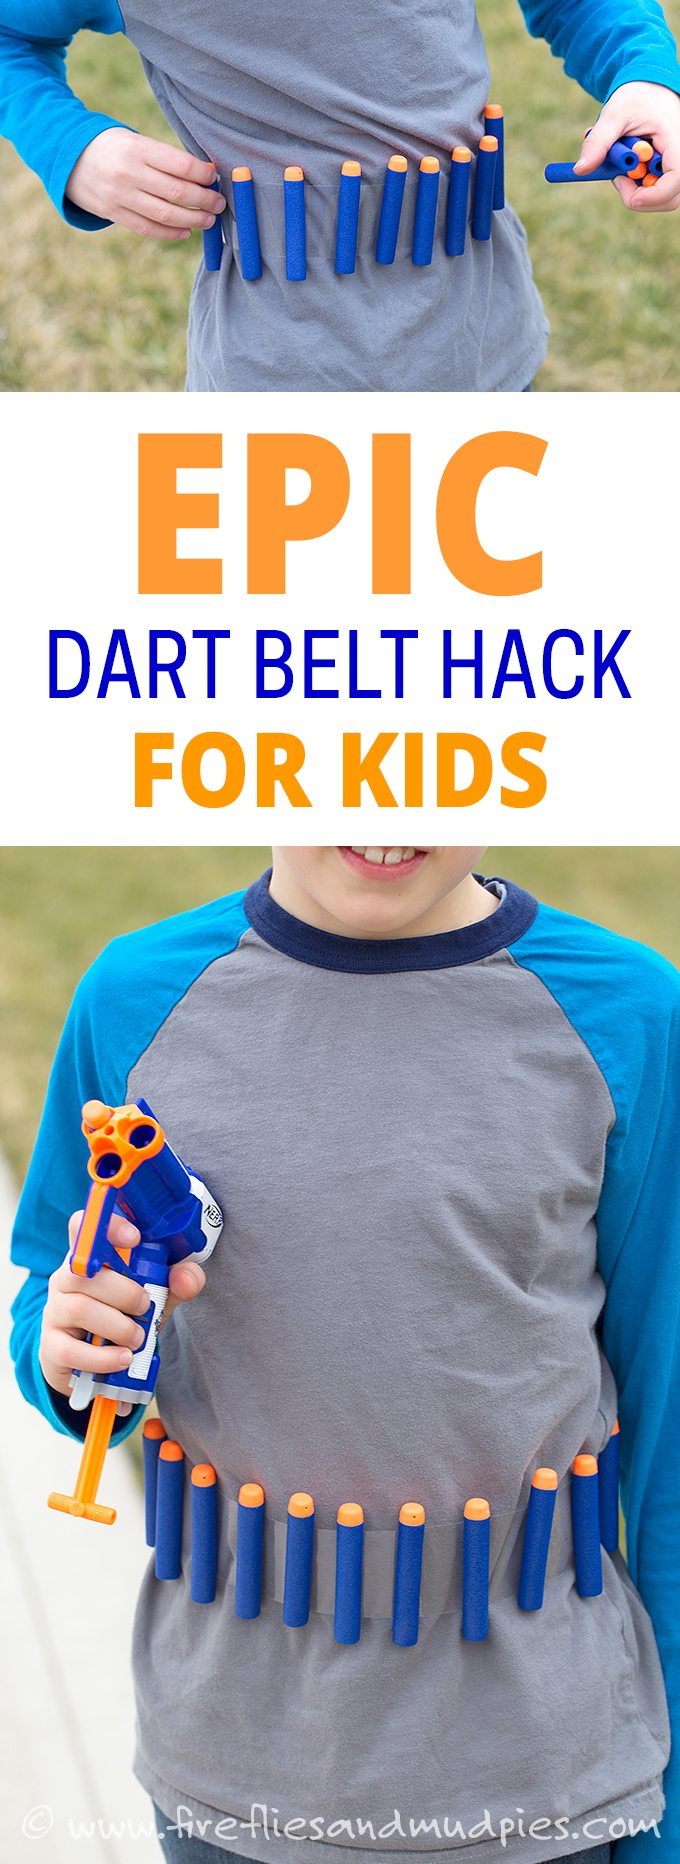 Do your kids love NERF® battles? This epic dart belt hack will keep them playing longer and even help with cleanup!